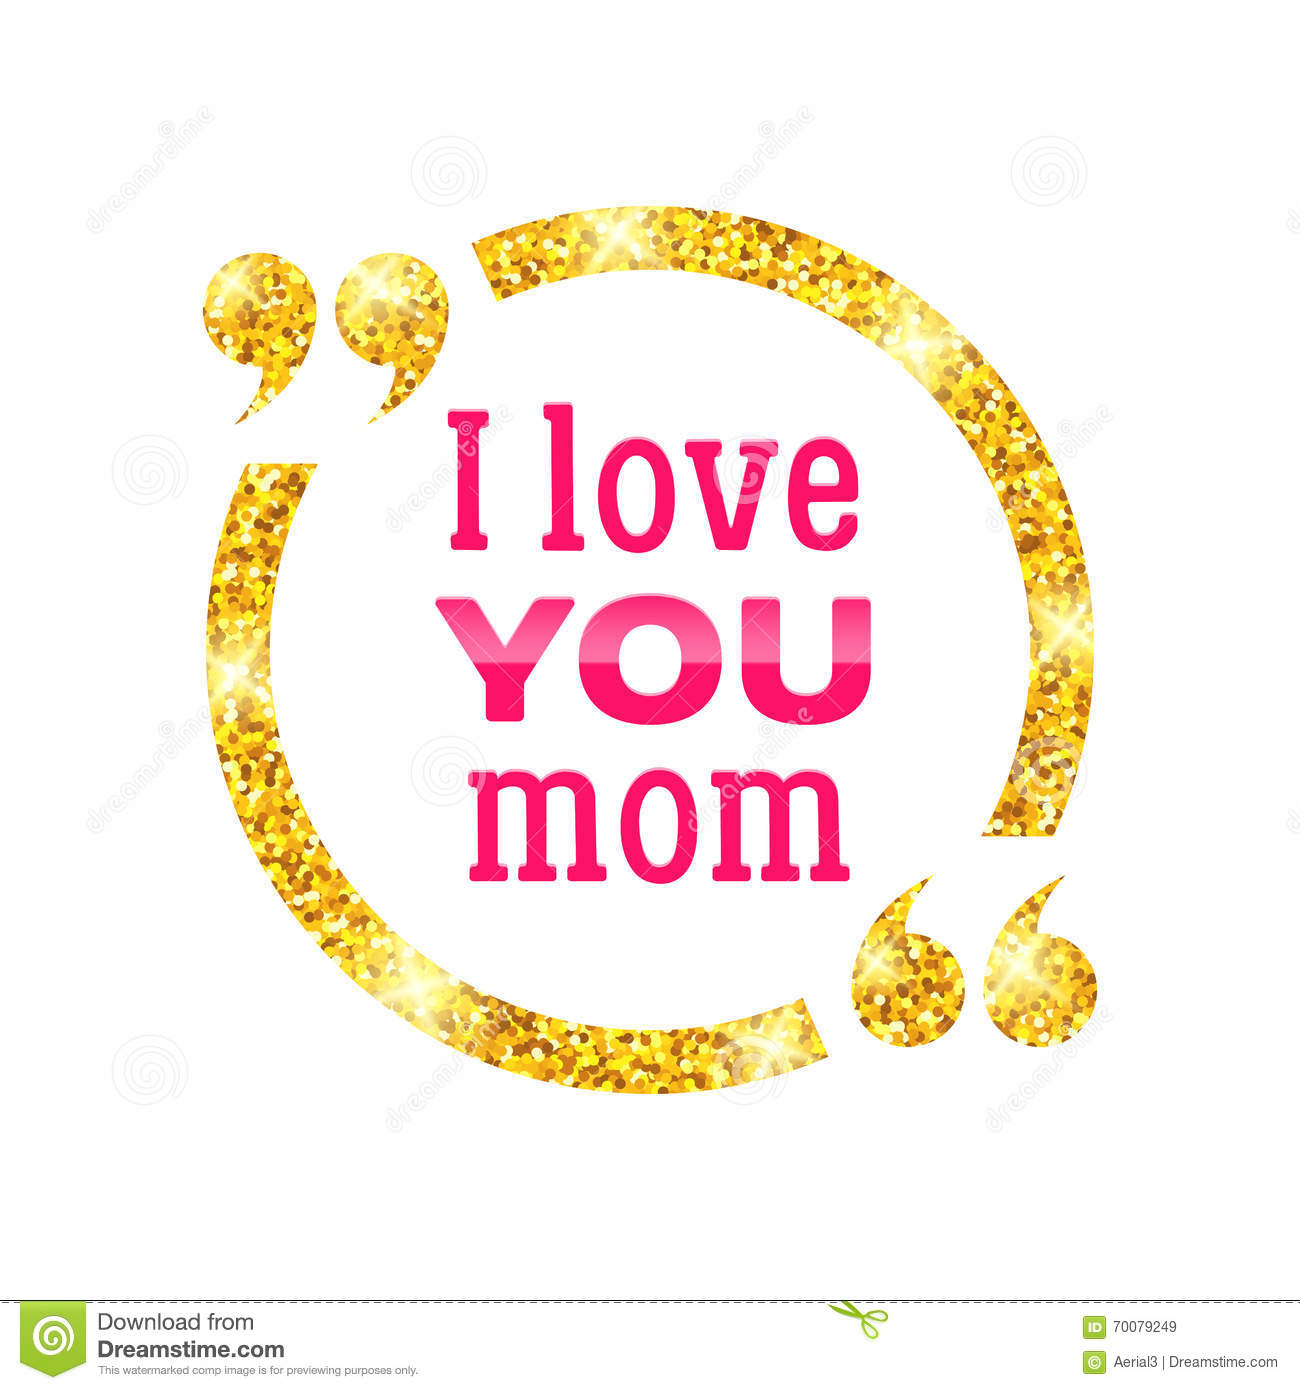 Royalty Free Vector Download I Love You Mom